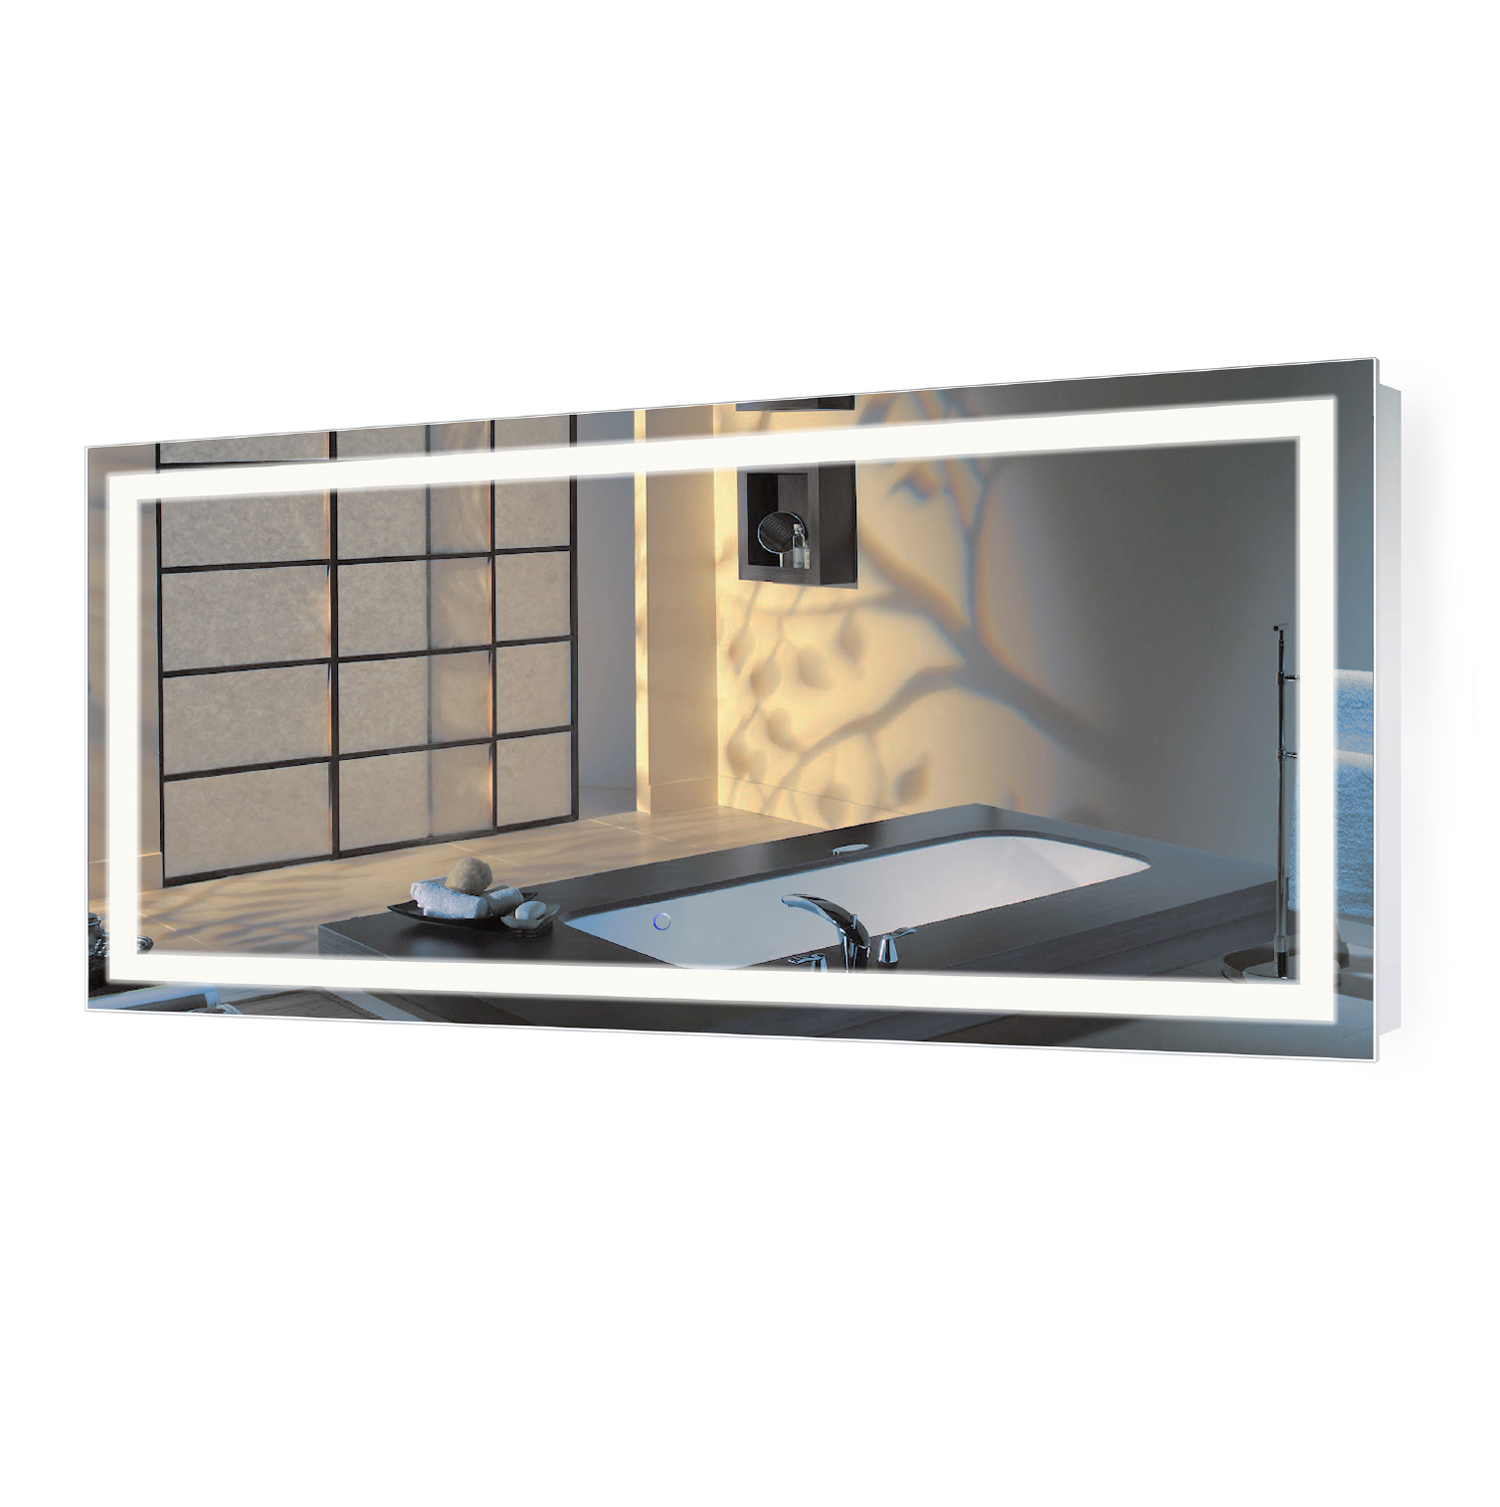 Icon 60″ X 30″ LED Bathroom Mirror  w/ Dimmer & Defogger | Large Lighted Vanity Mirror